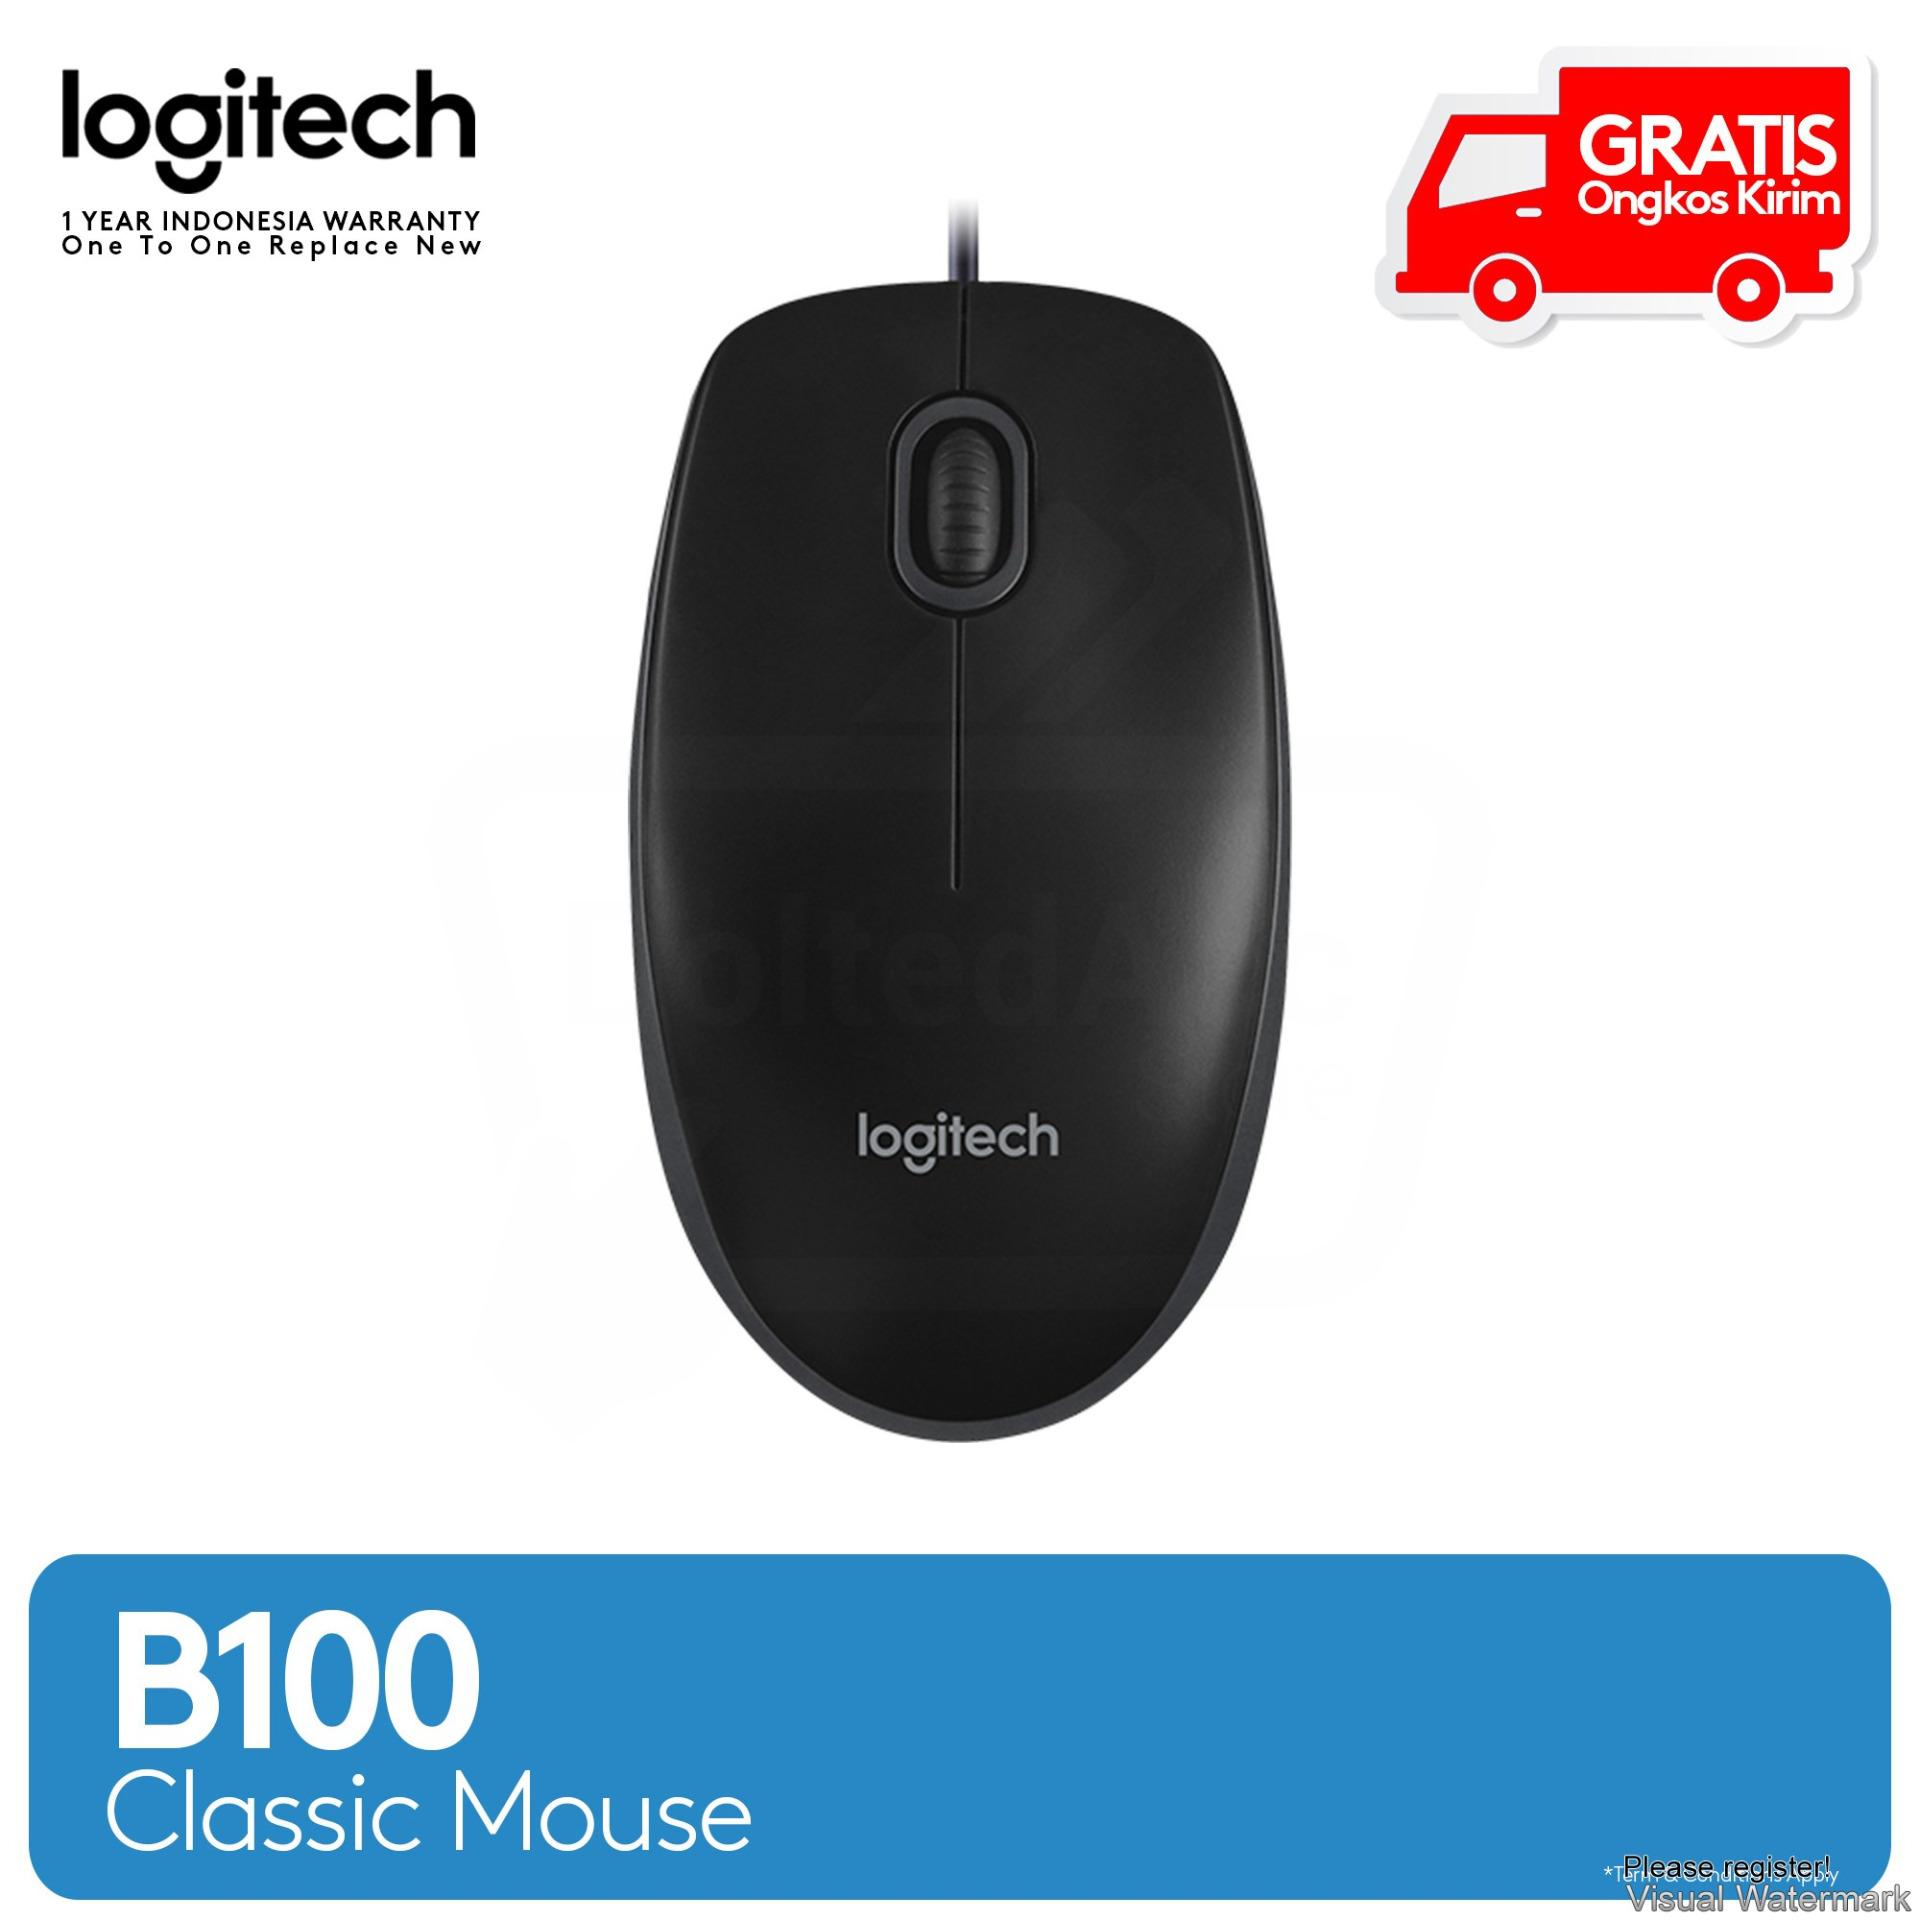 Kelebihan Keyboard Mouse Logitech K120 Usb B100 Garansi 1 Optical Original Hitam